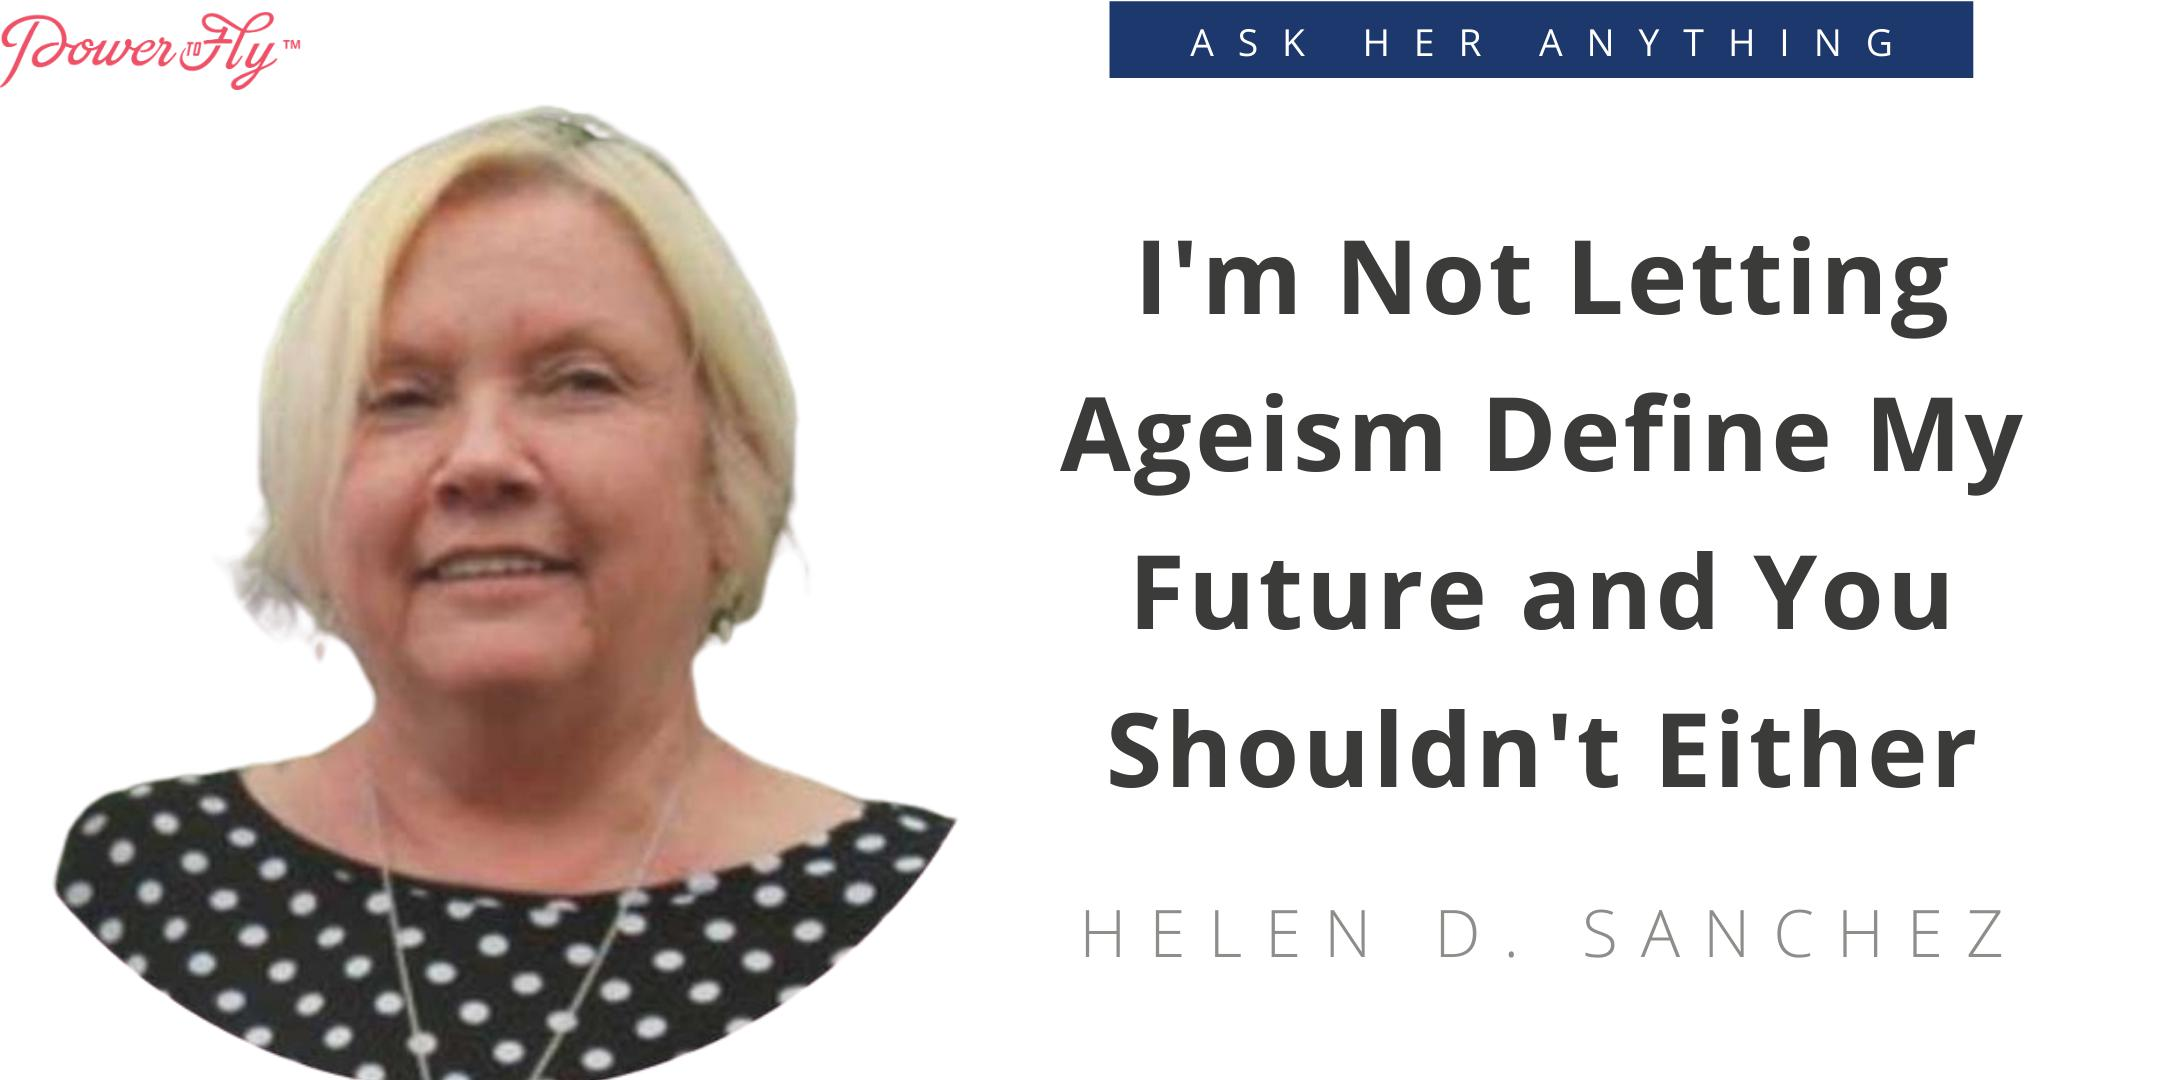 I'm Not Letting Ageism Define My Future and You Shouldn't Either